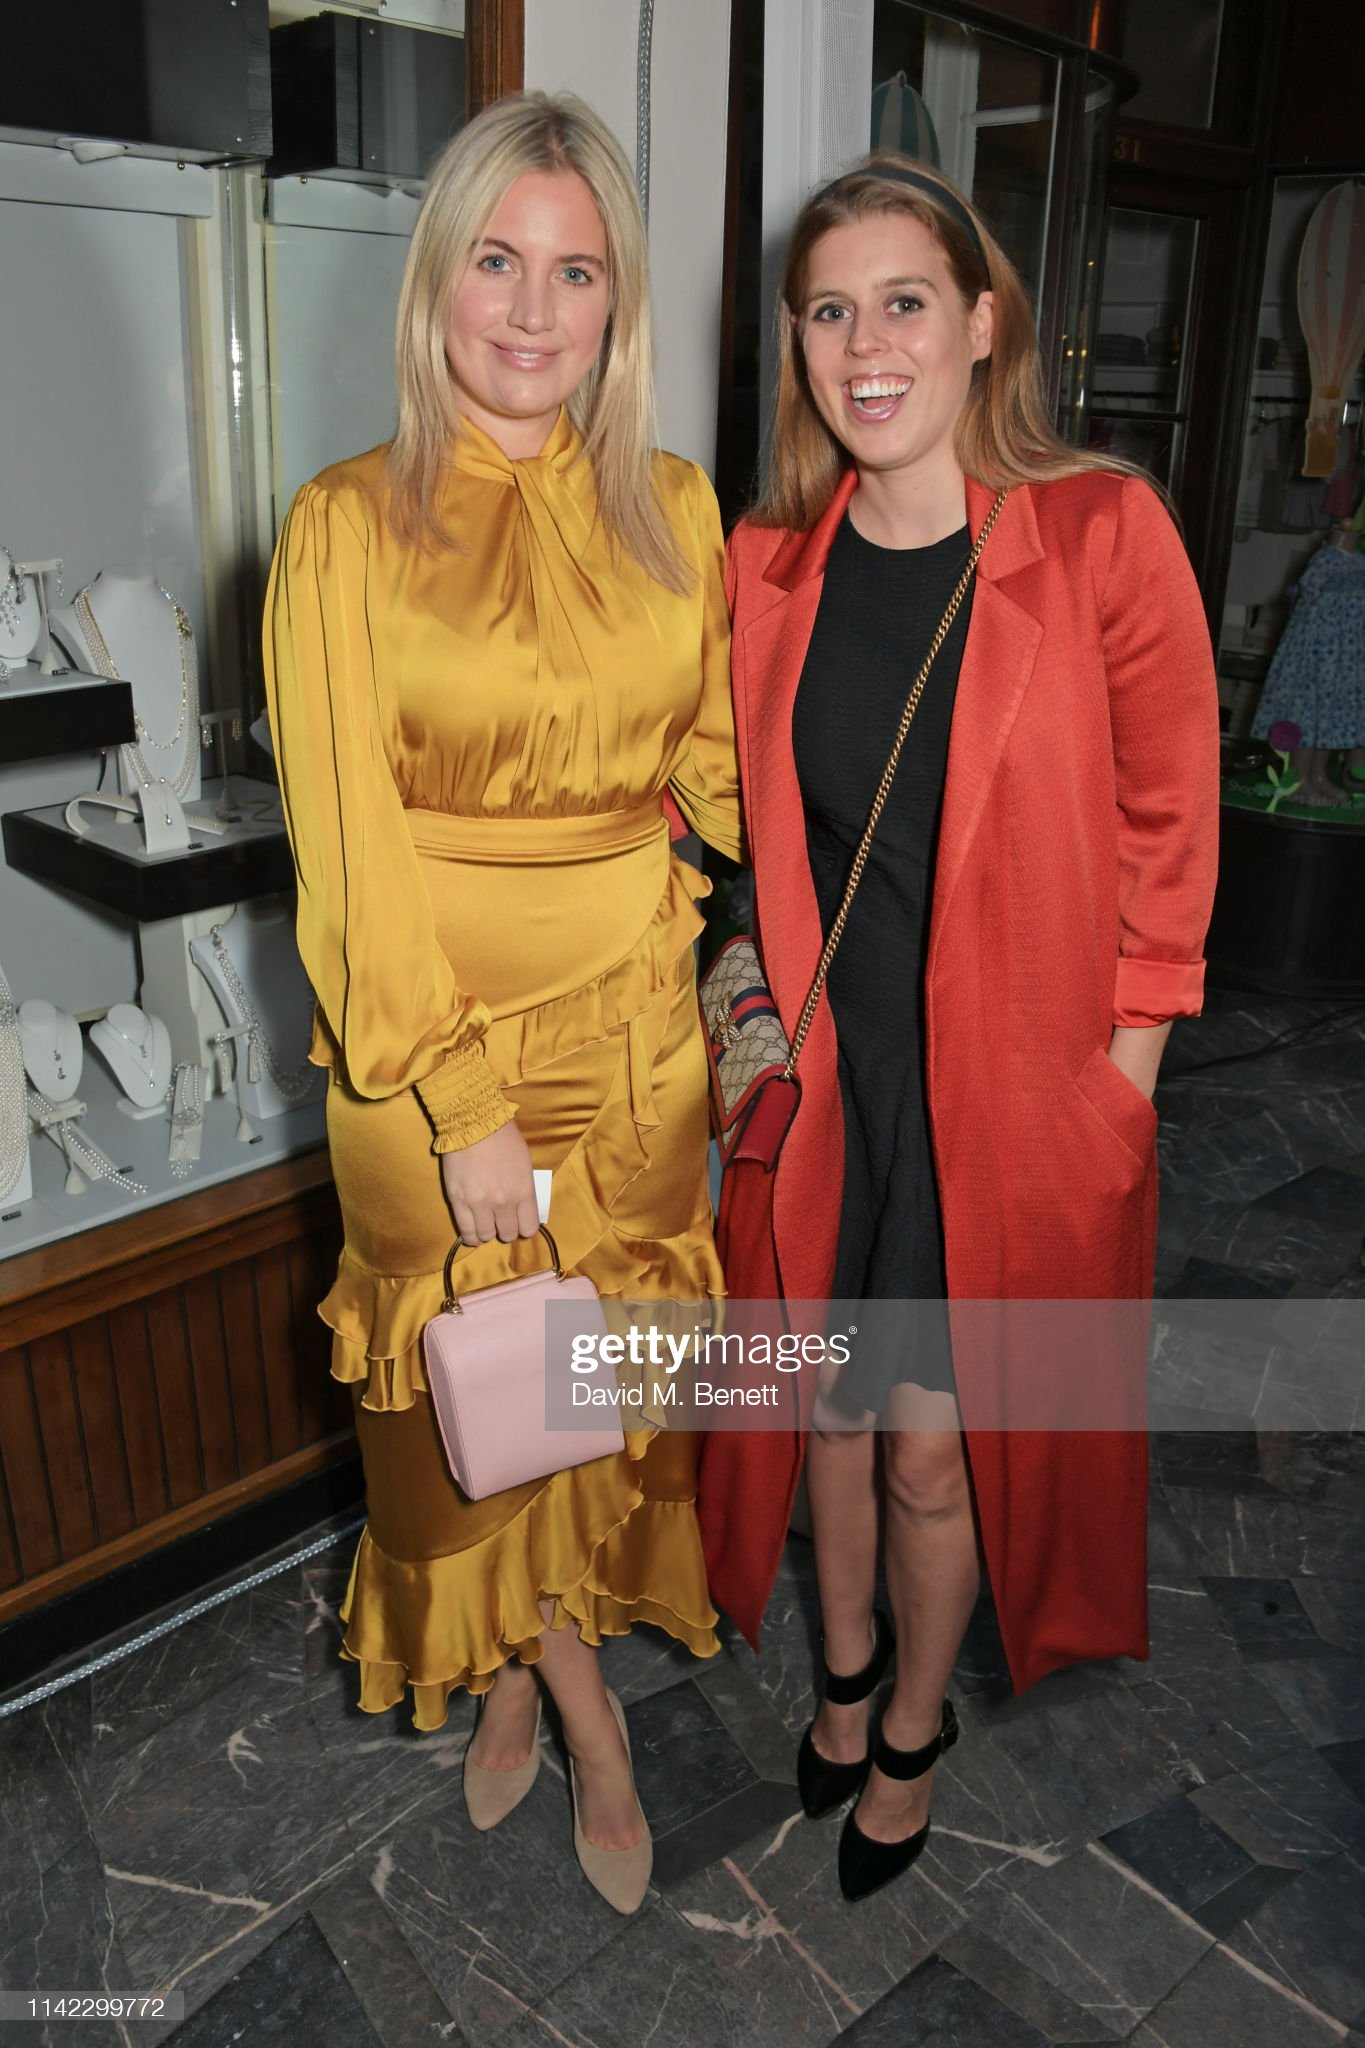 https://media.gettyimages.com/photos/marissa-montgomery-and-princess-beatrice-of-york-attend-the-arcade-picture-id1142299772?s=2048x2048